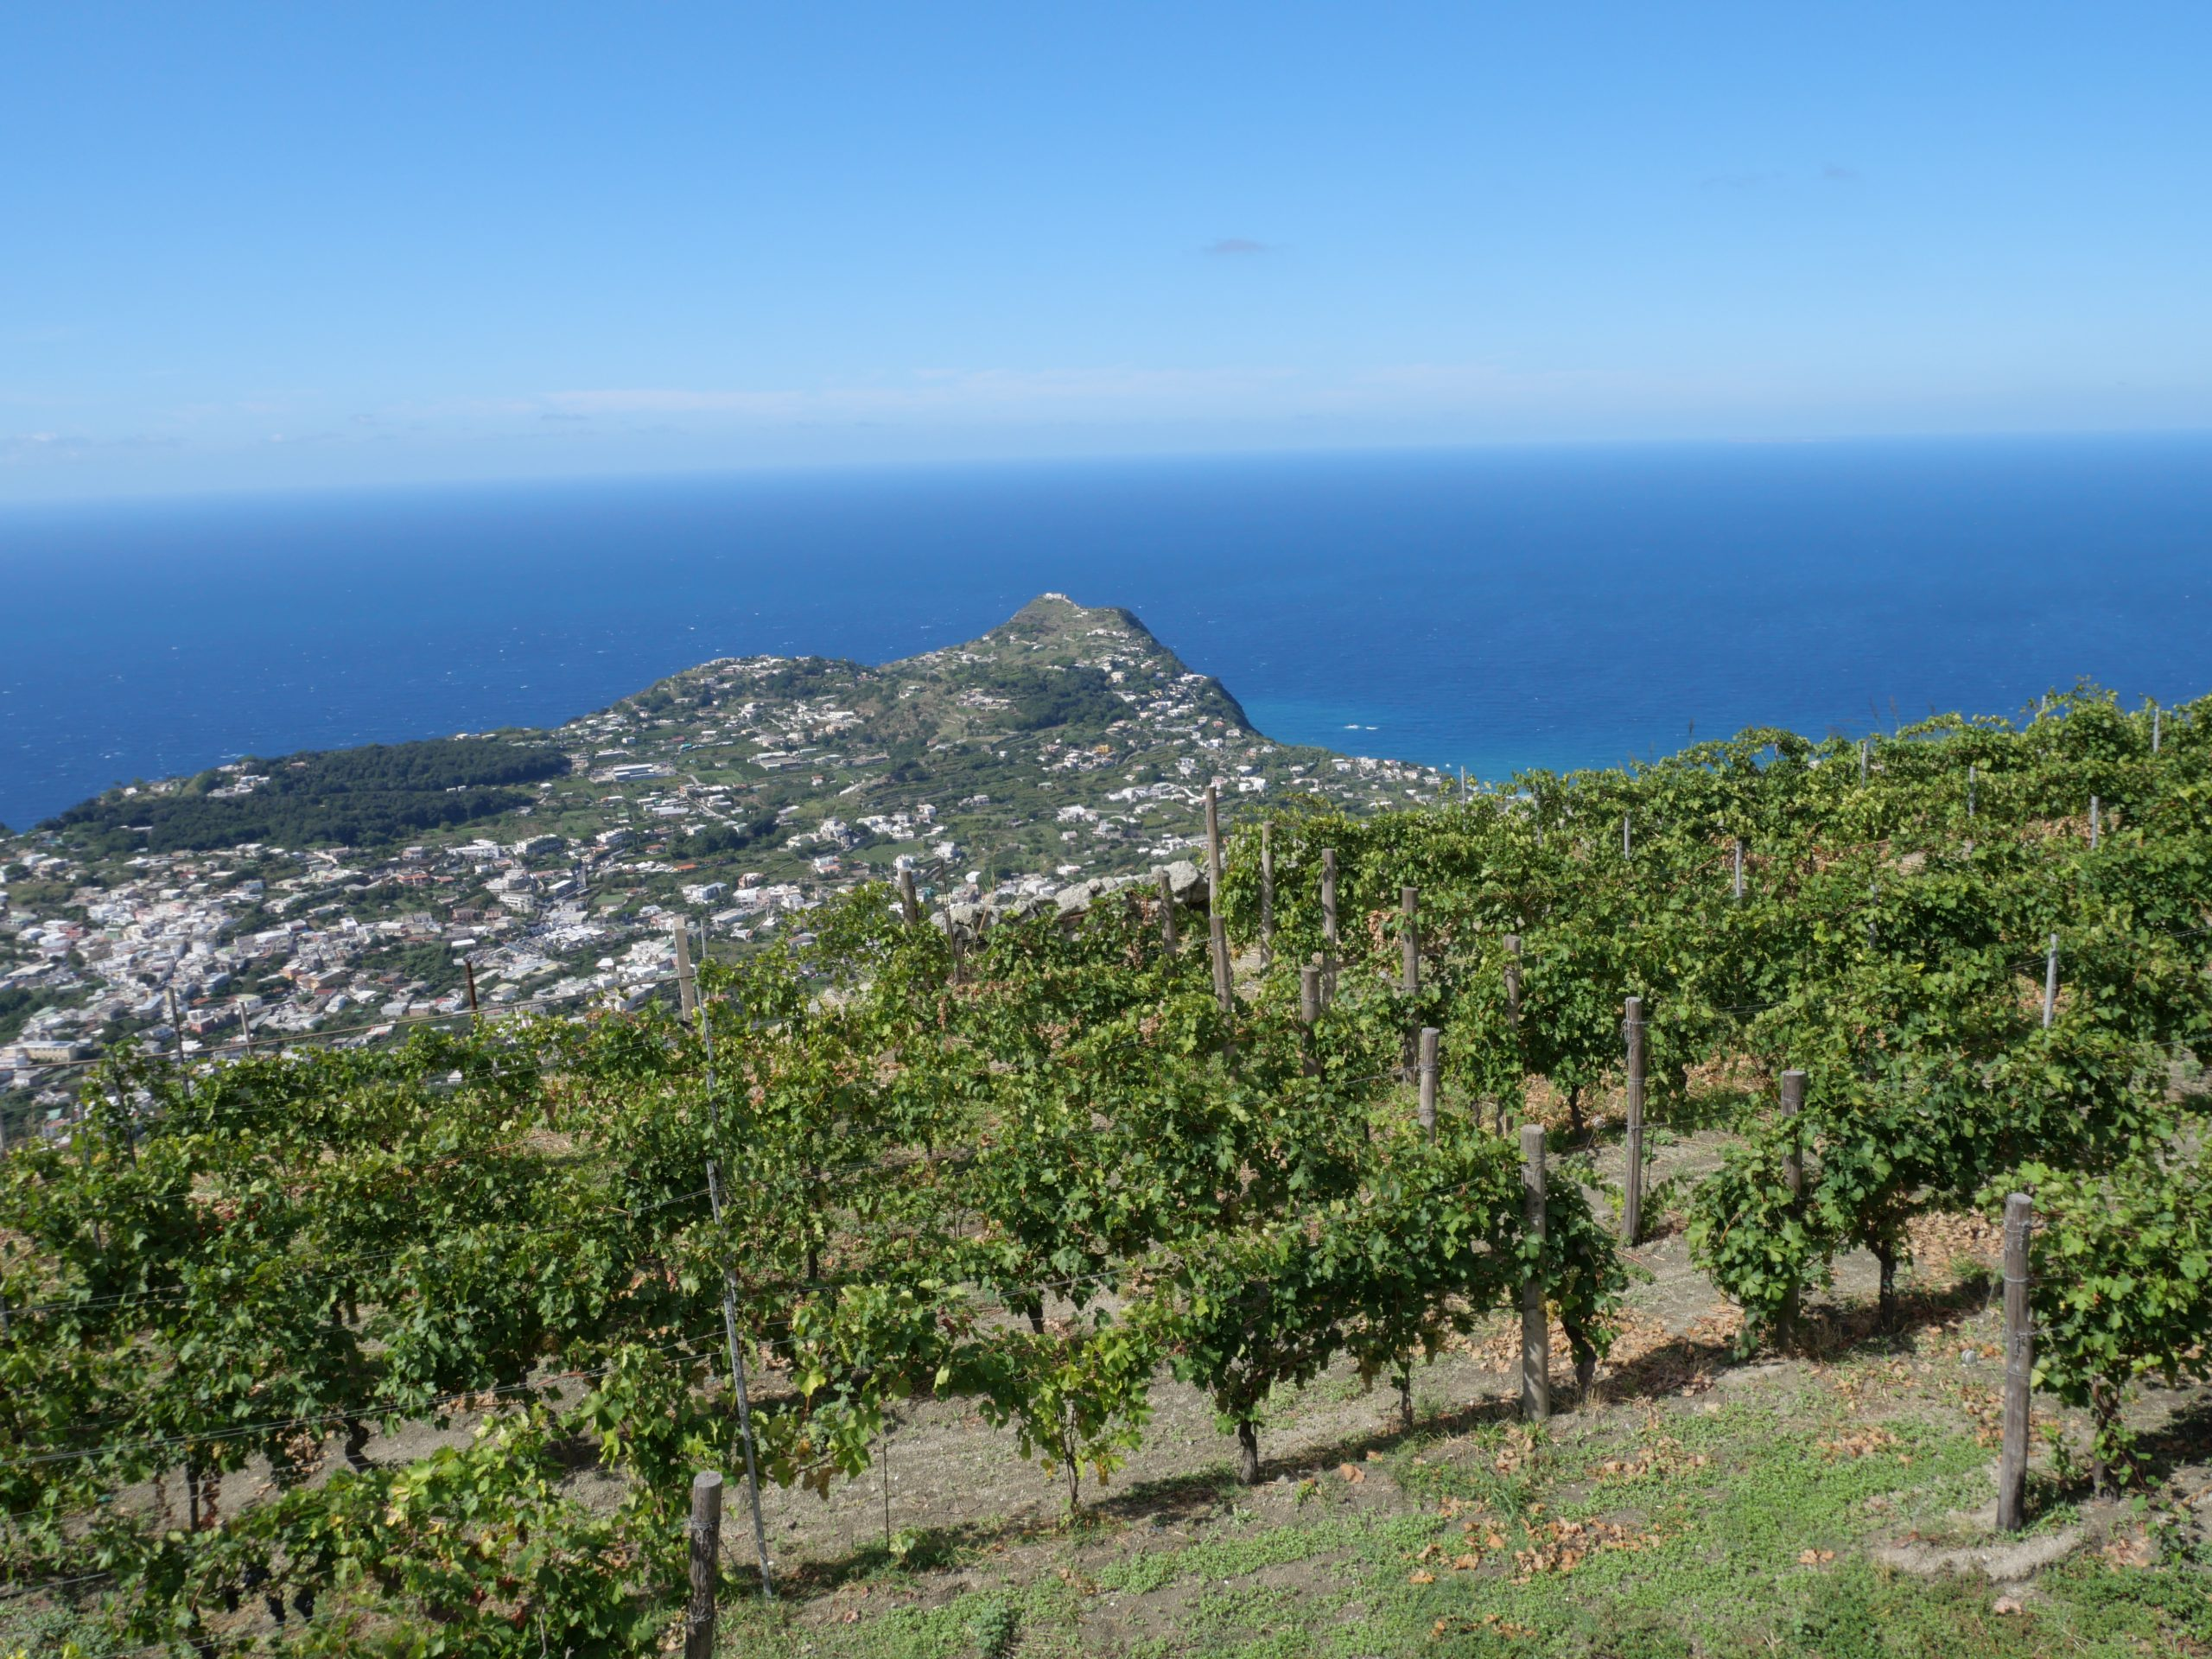 vineyards in Ischia